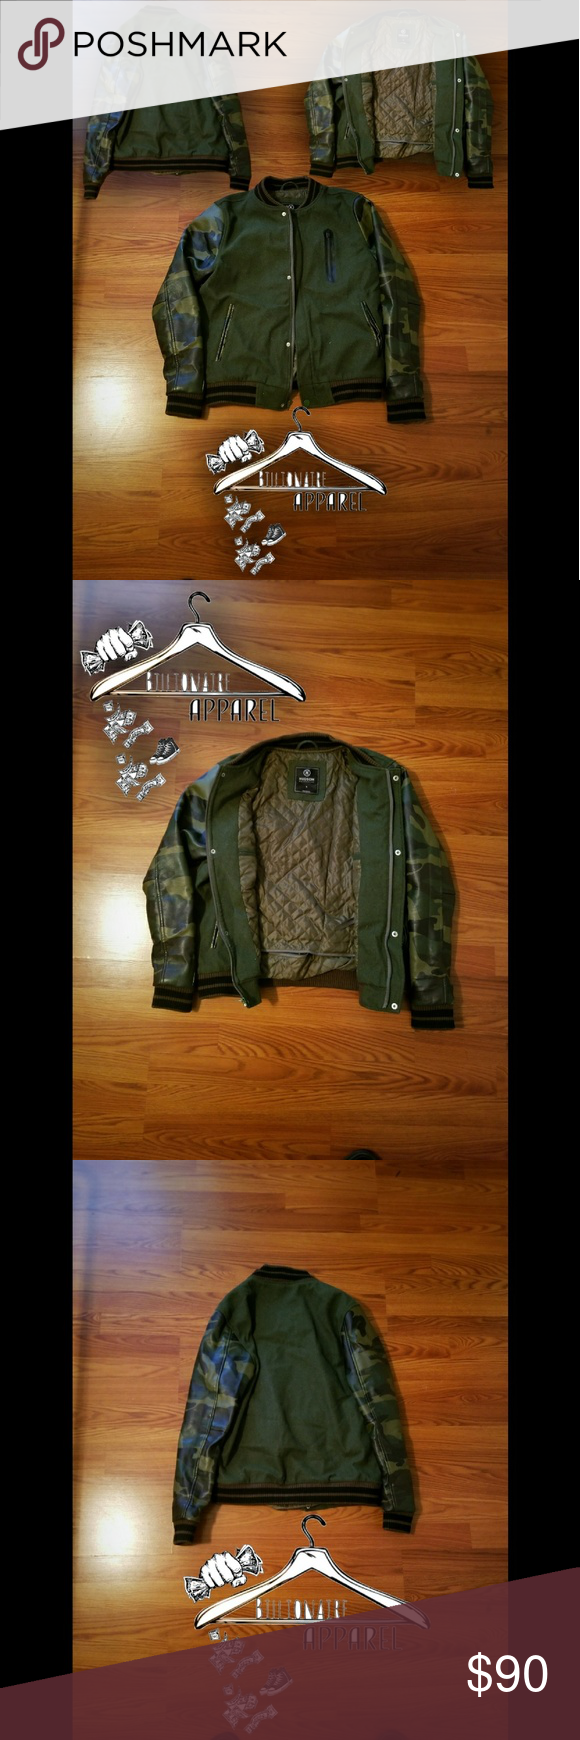 Hudson Outerwear Jacket Hudson Outerwear Army Green Jacket With Camo Sleeves Size Men S Small Color Olive Camo Gree Army Green Jacket Clothes Design Fashion [ 1740 x 580 Pixel ]